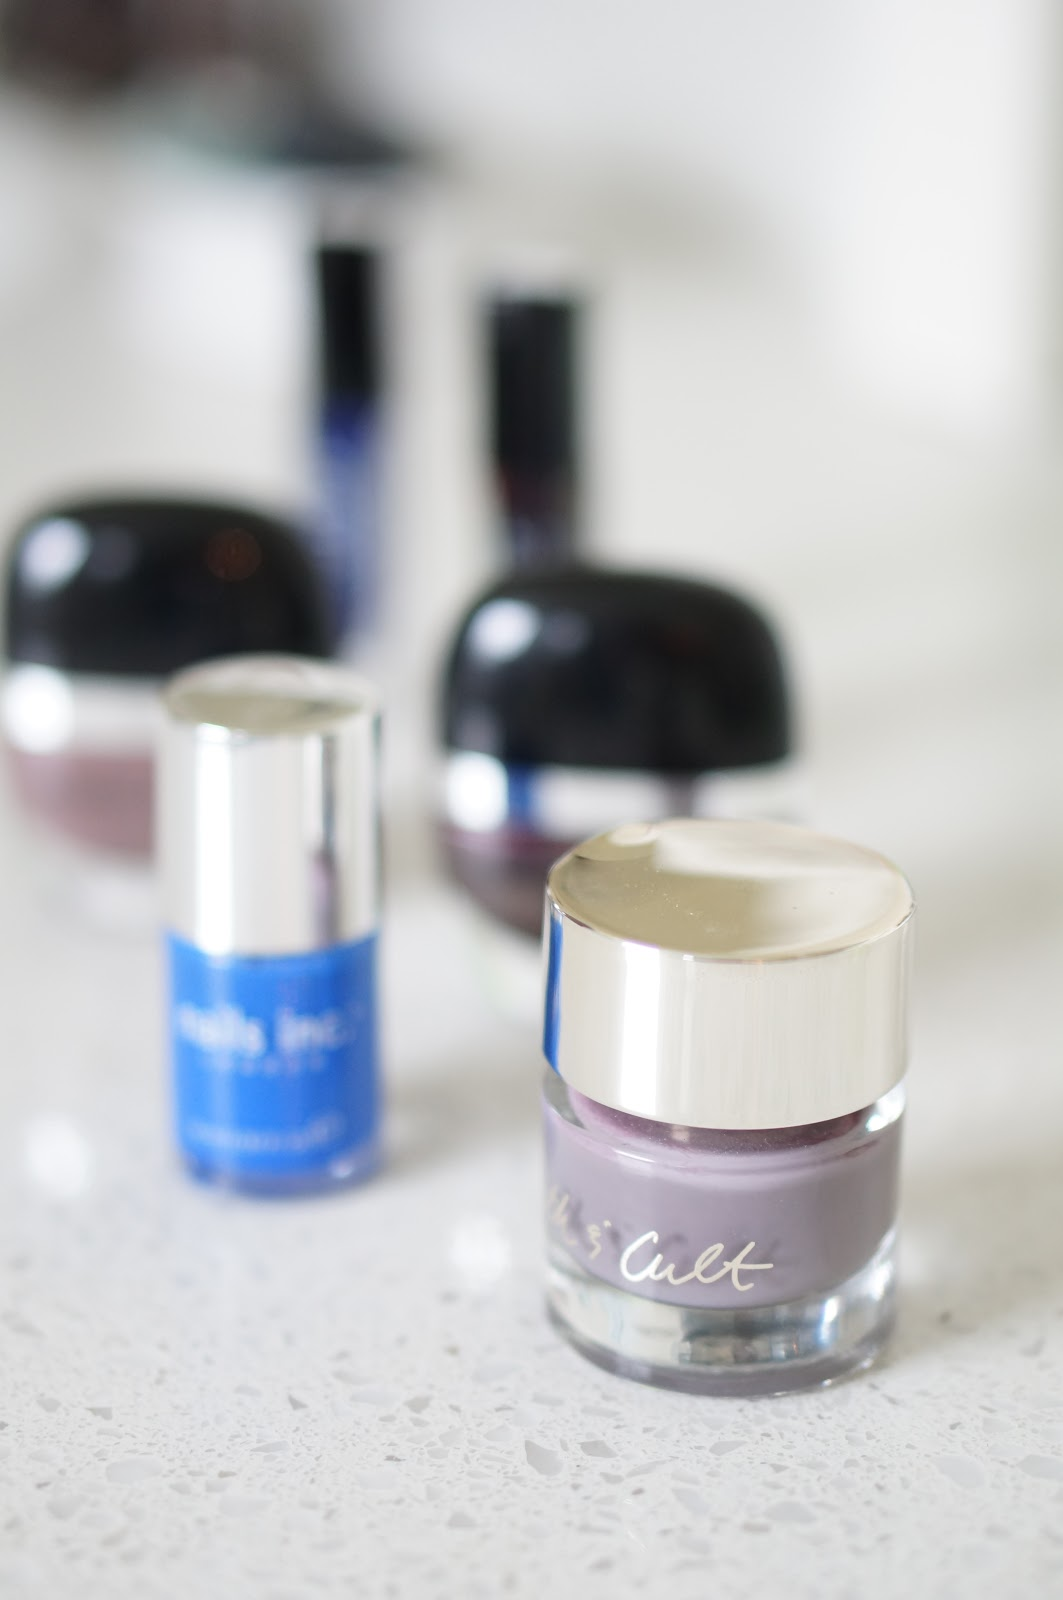 CRUELTY FREE BEAUTY | FALL NAIL POLISH by North Carolina style blogger Rebecca Lately